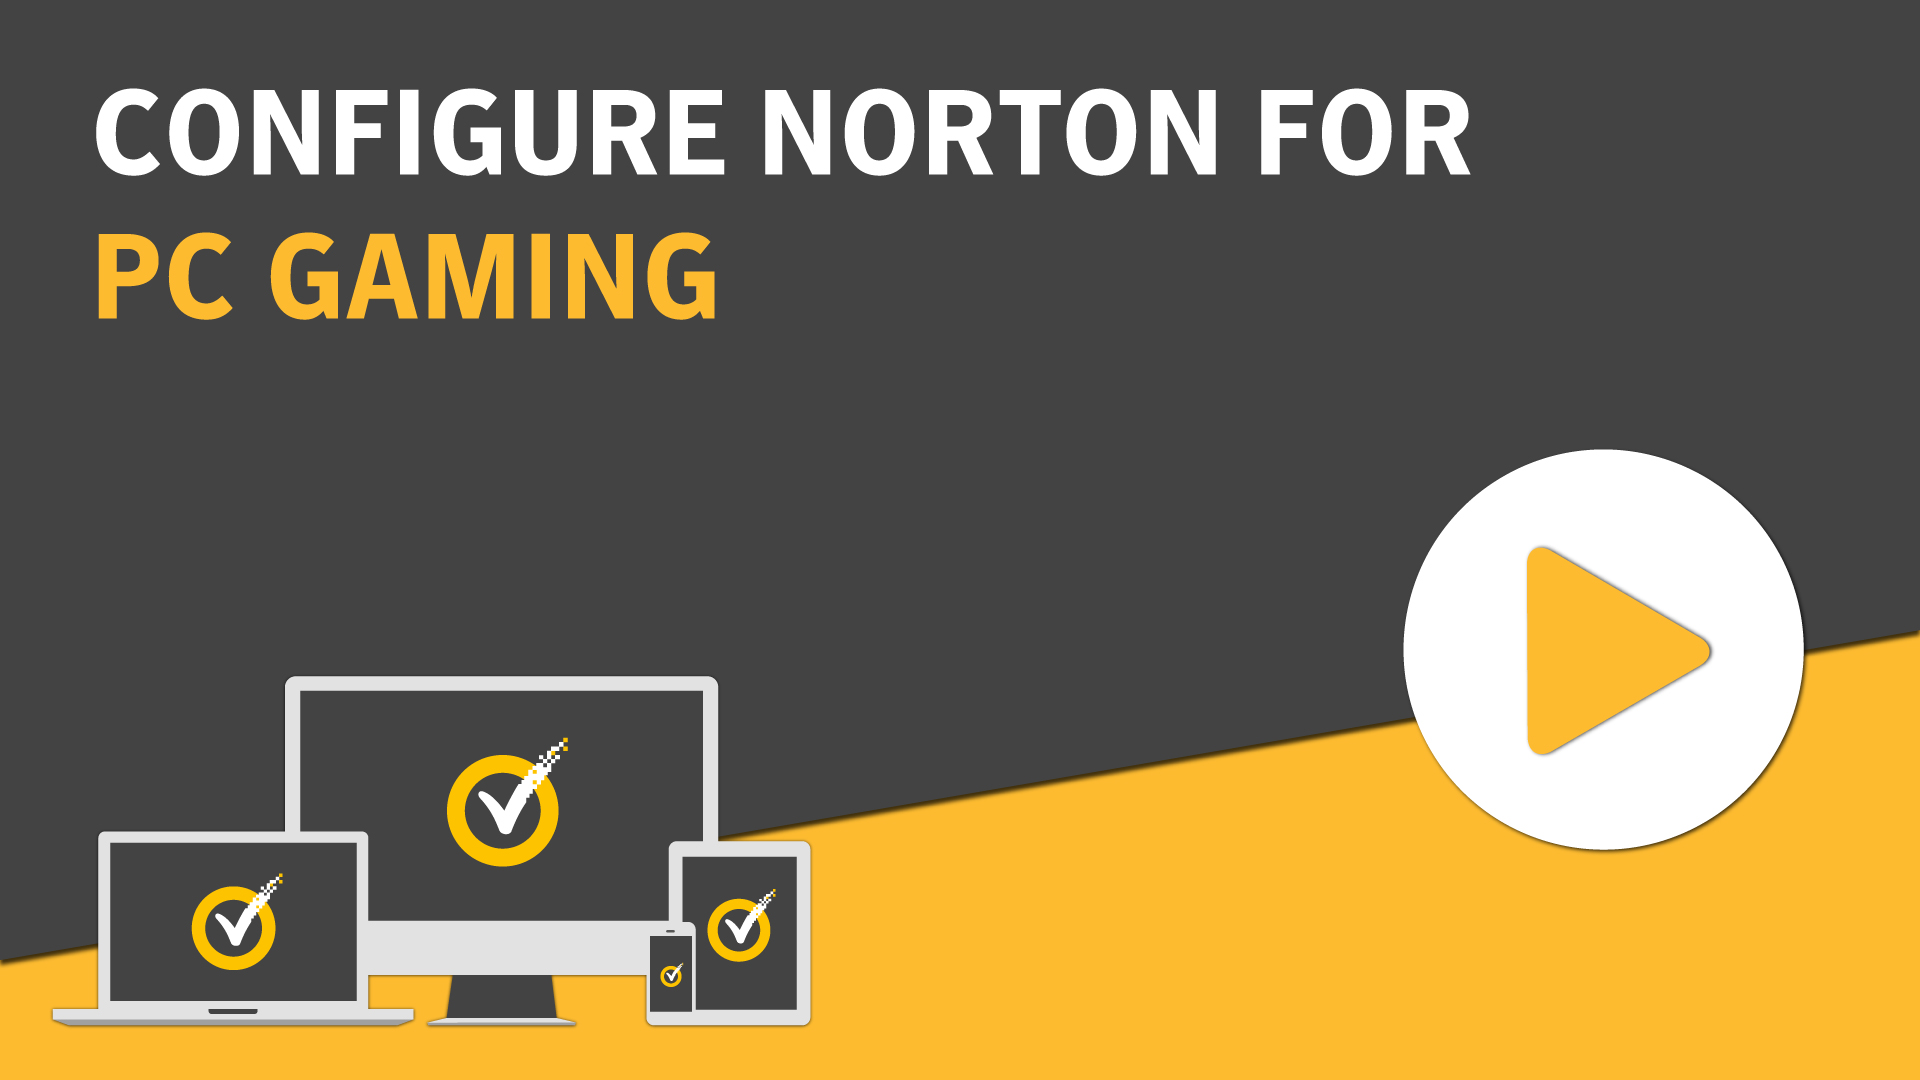 Stay secure with Norton without sacrificing speed when gaming